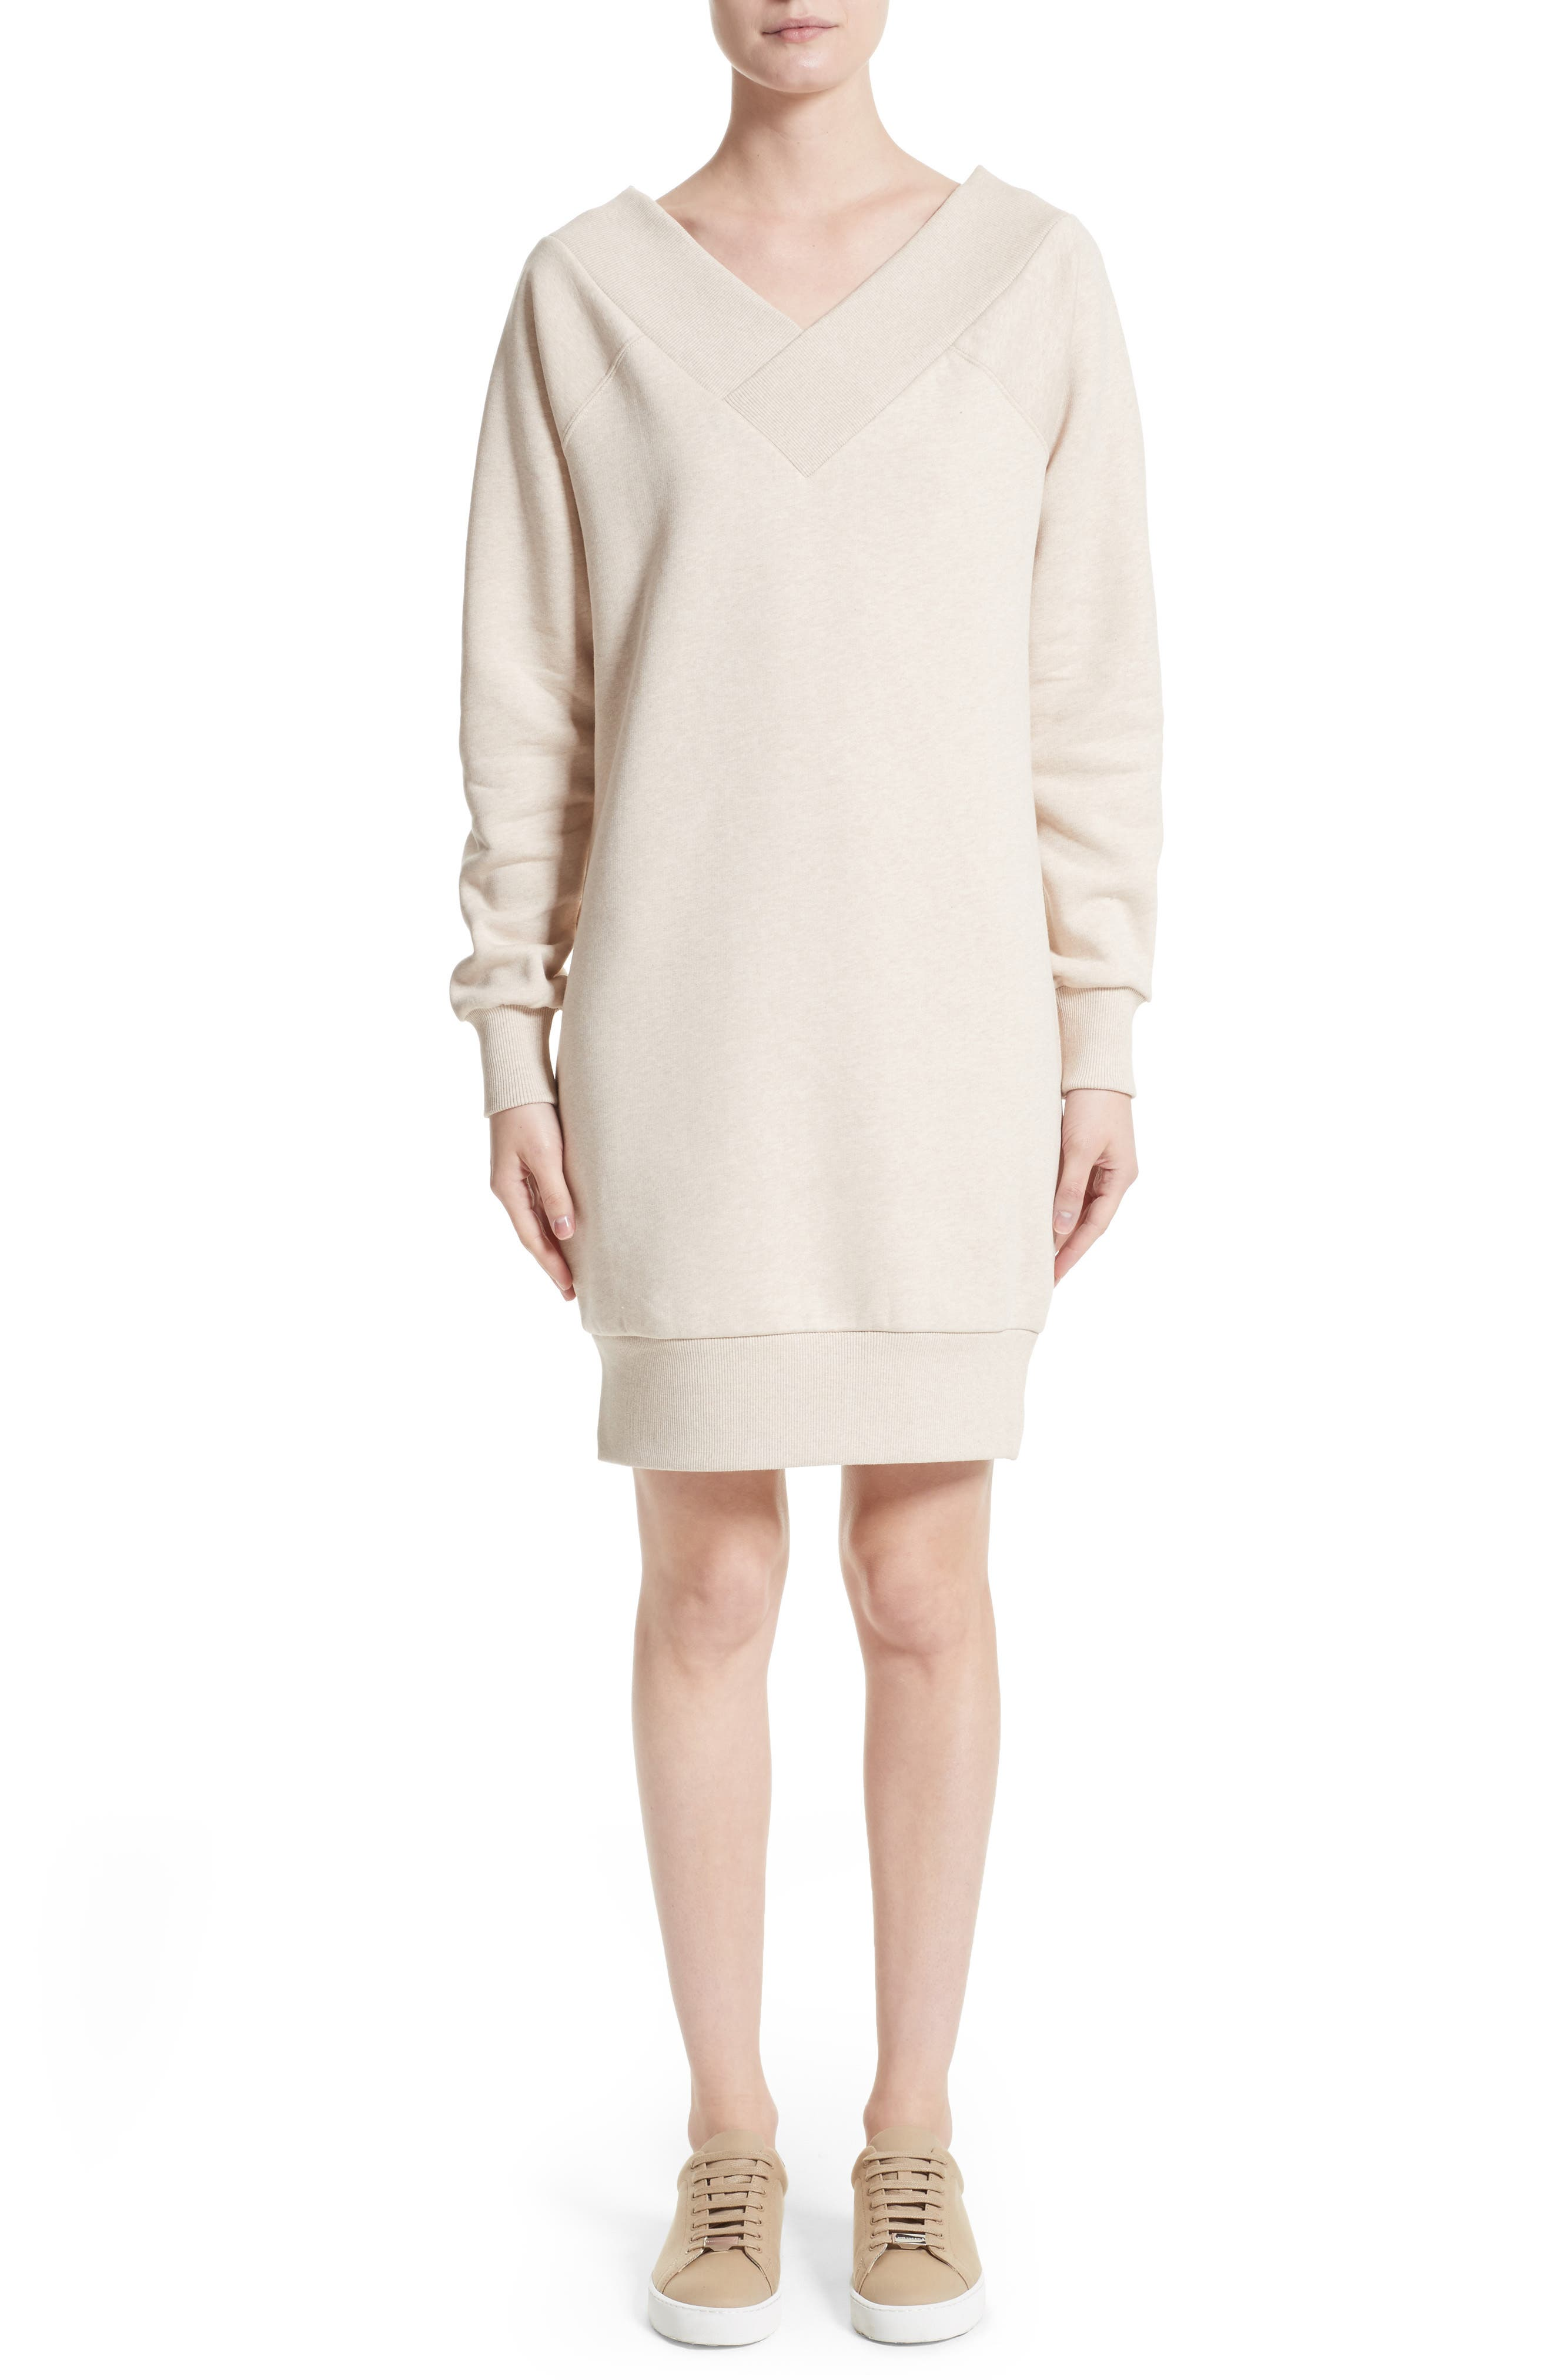 Burberry Taro Sweatshirt Dress